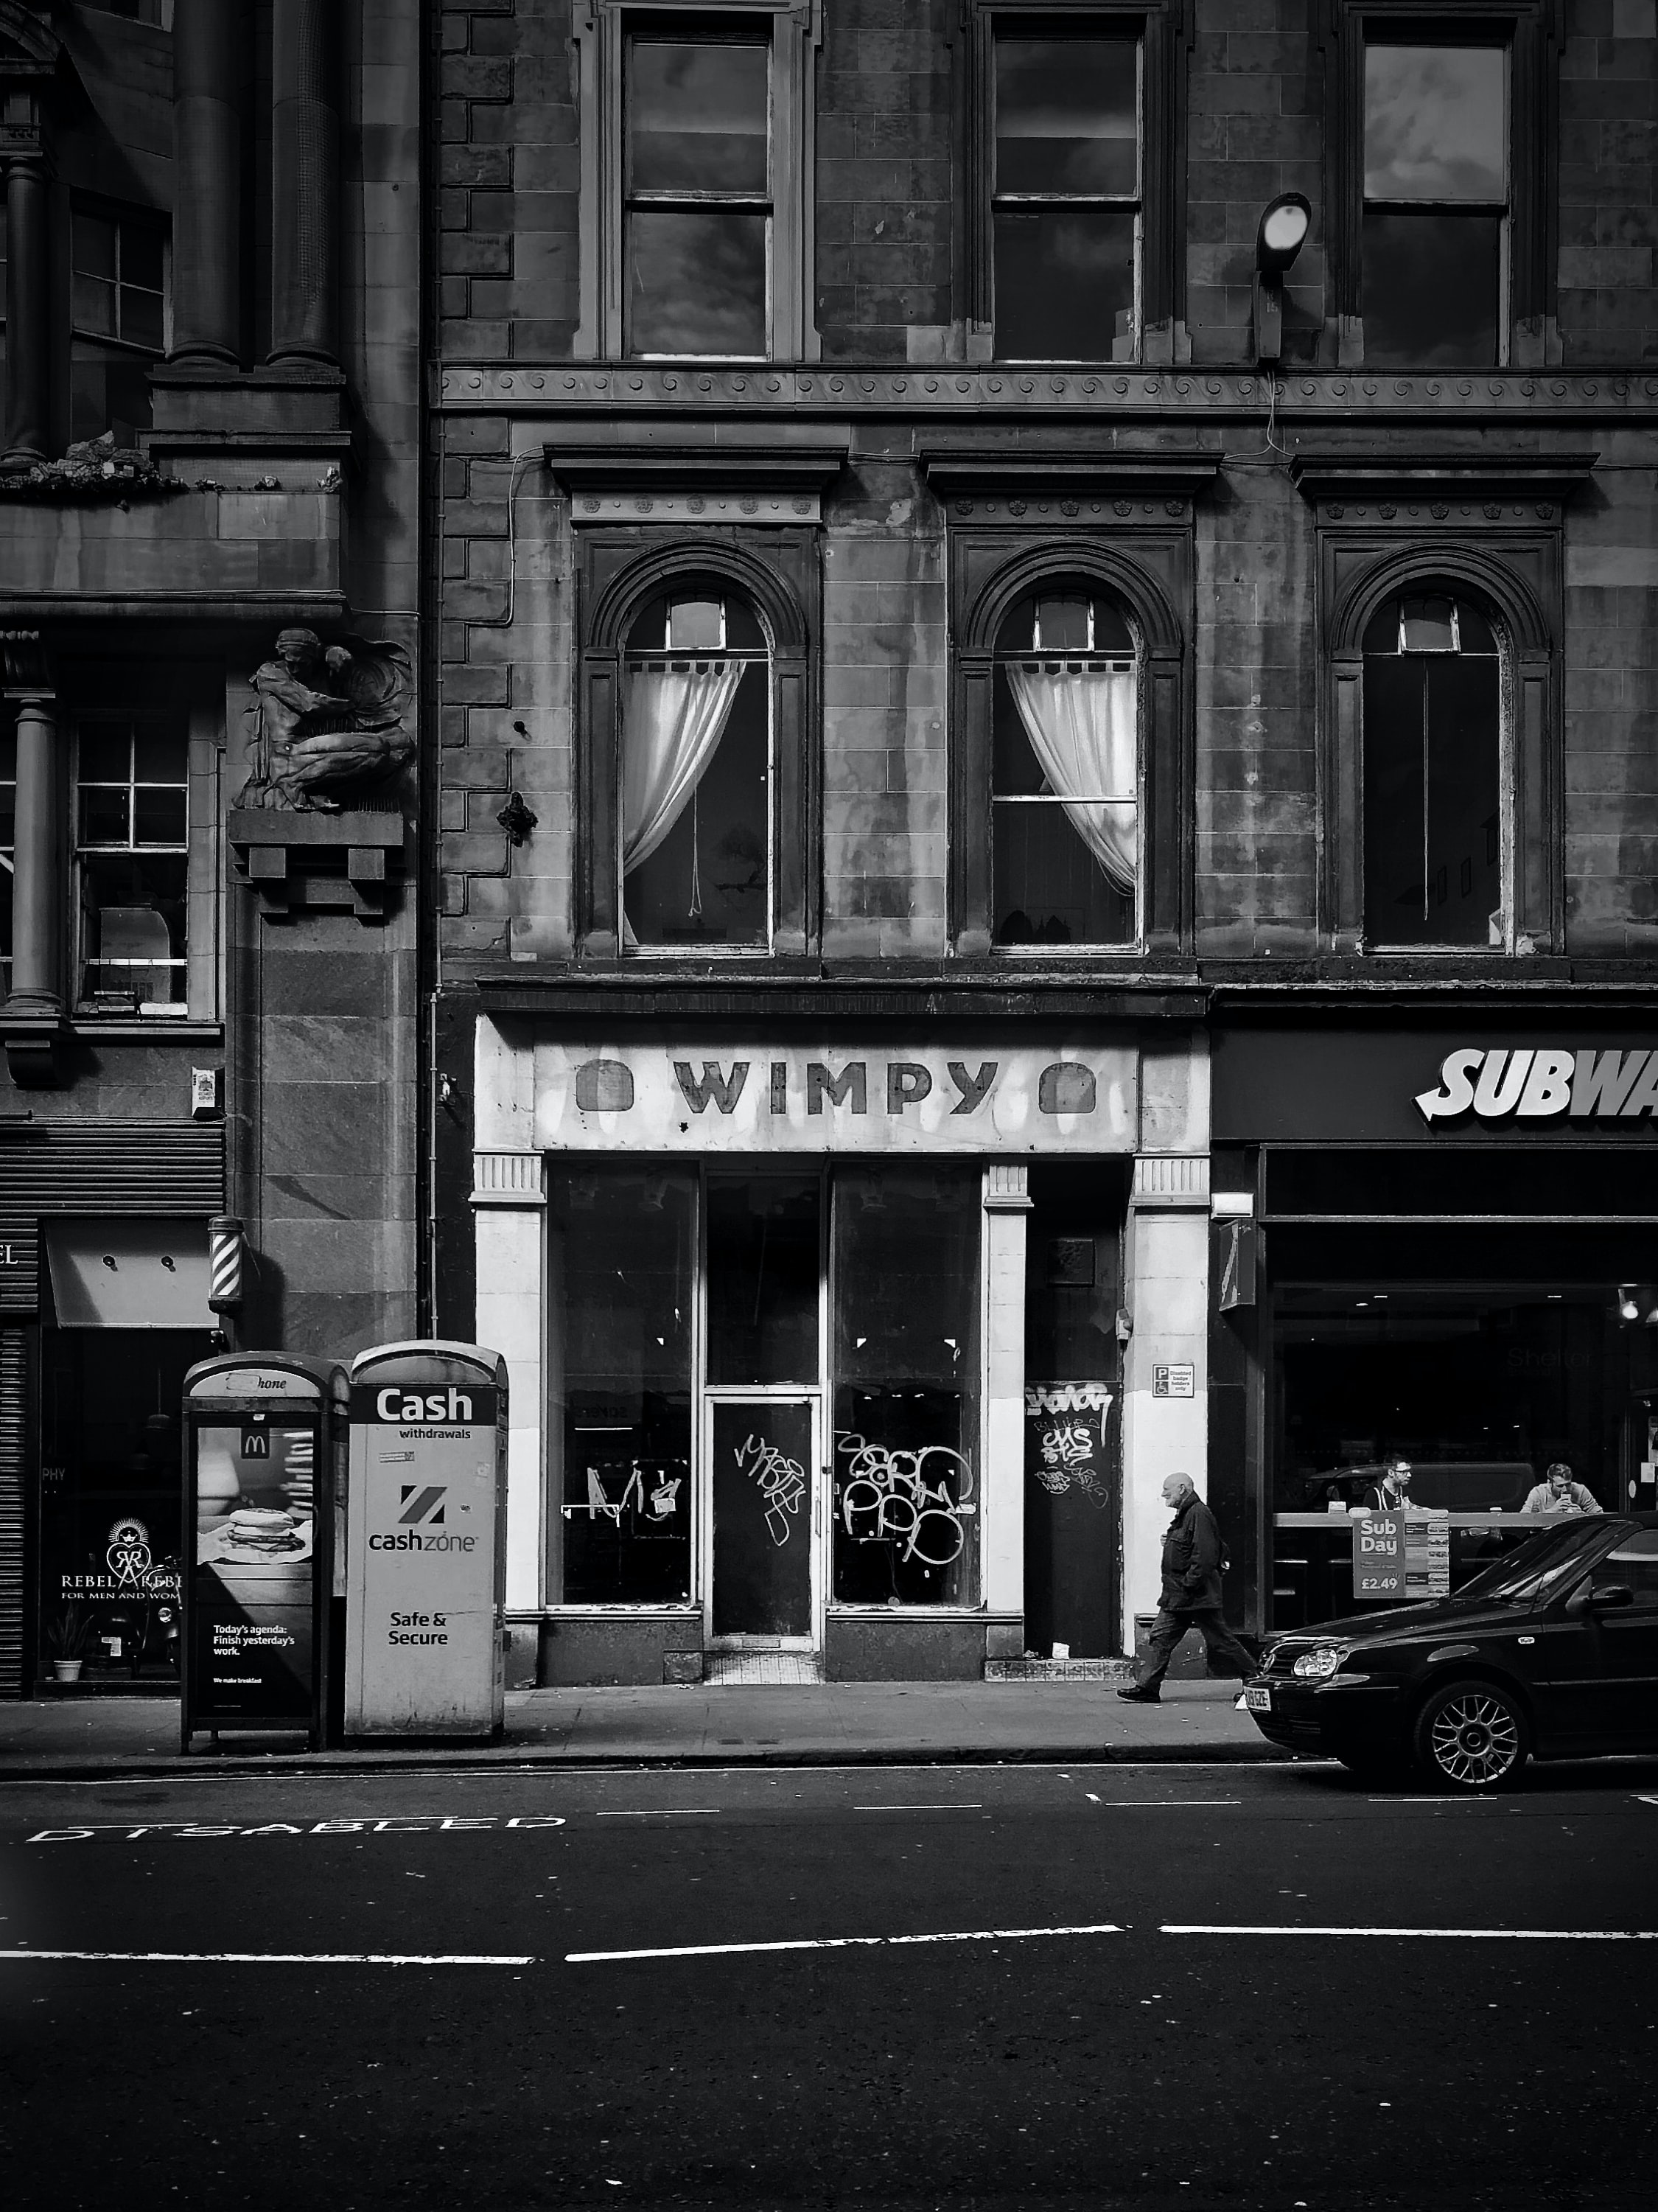 grayscale photo of person waking on street beside Wimpy boutique